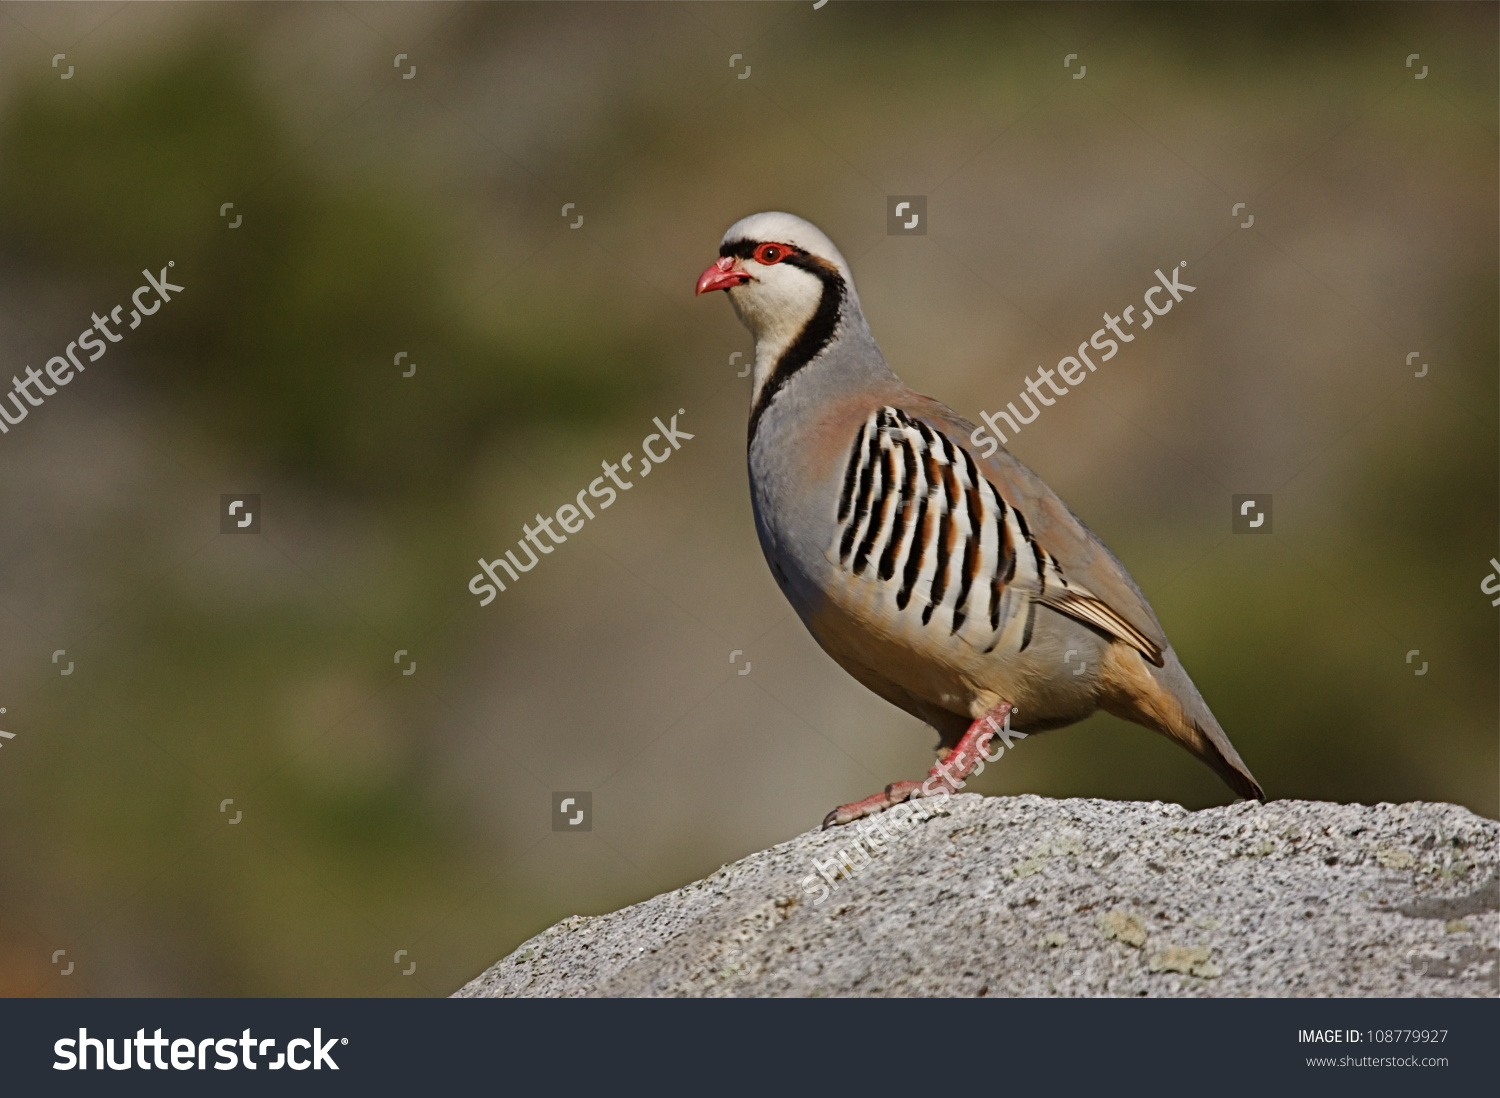 Chukar Partridge On Rock Smoothly Blurred Stock Photo 108779927.